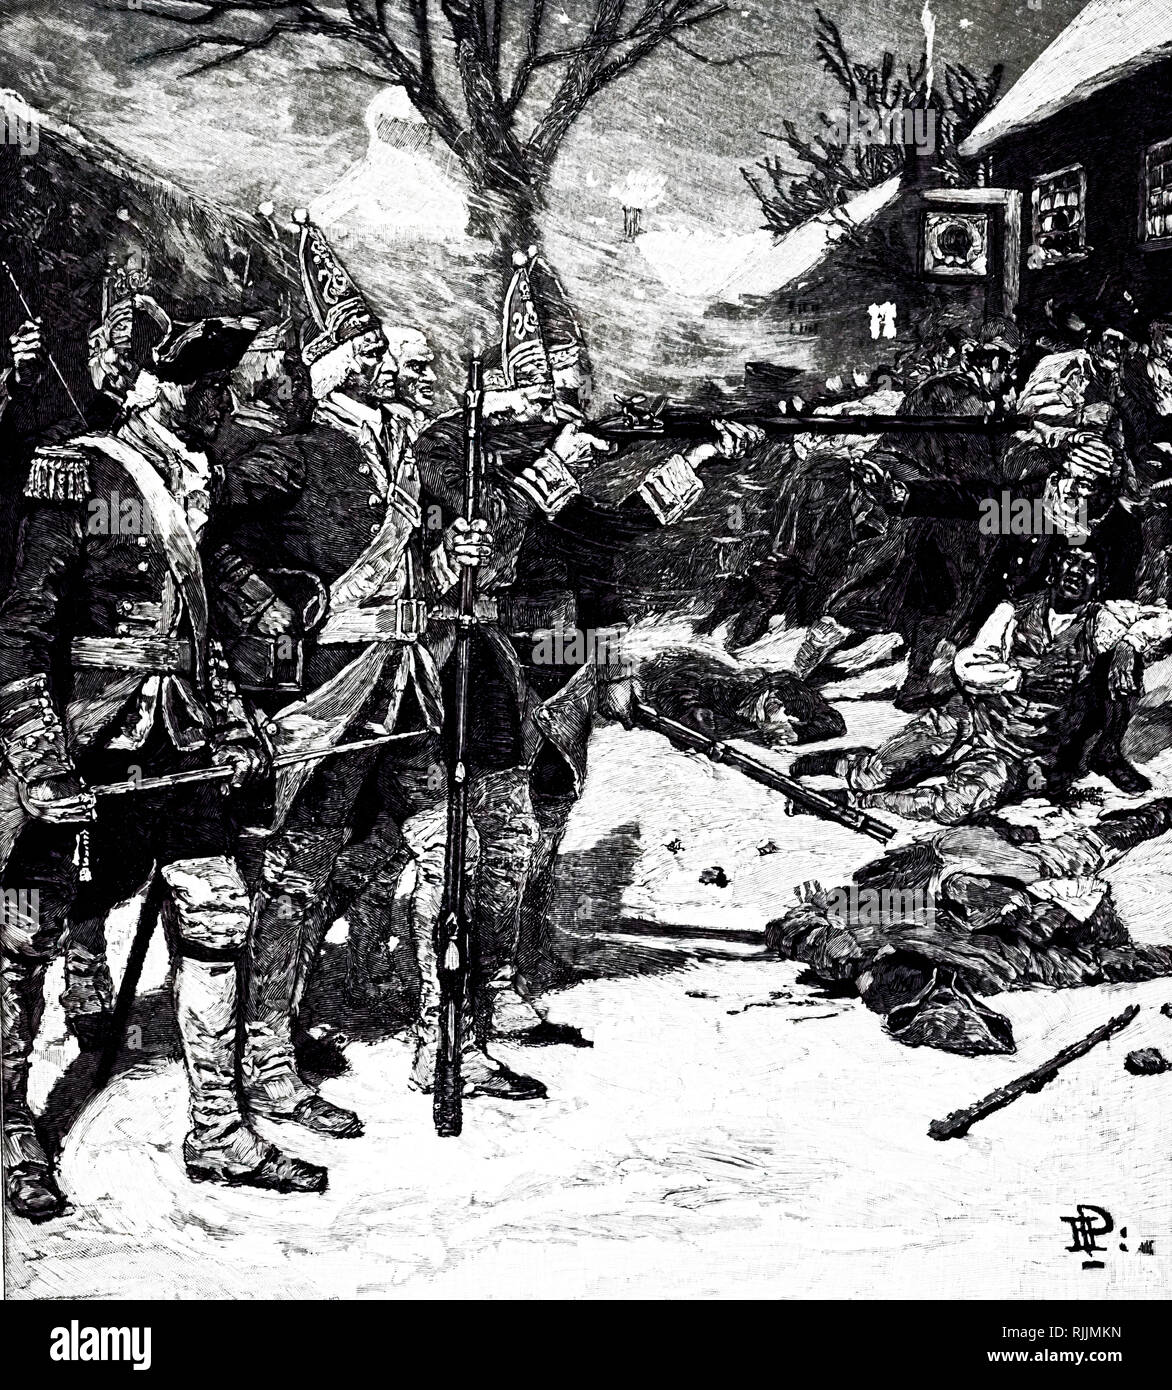 An engraving depicting a scene from the Boston Massacre, where British soldiers shot and killed several people while under attack by a mob. Dated 18th century - Stock Image